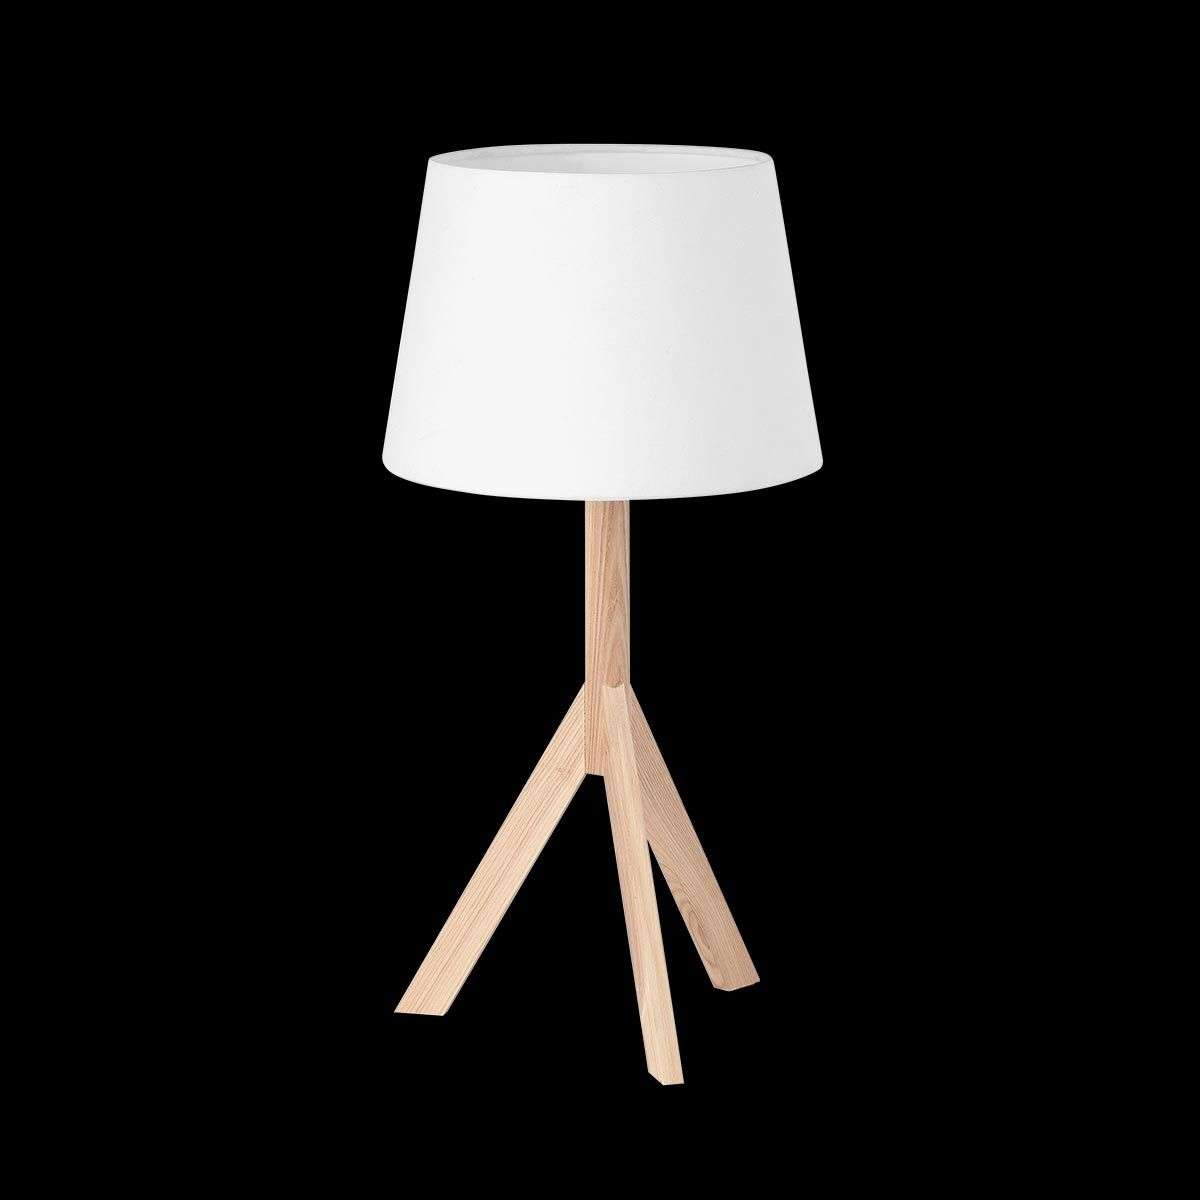 Hat Three-Legged Table Lamp-3507122-31